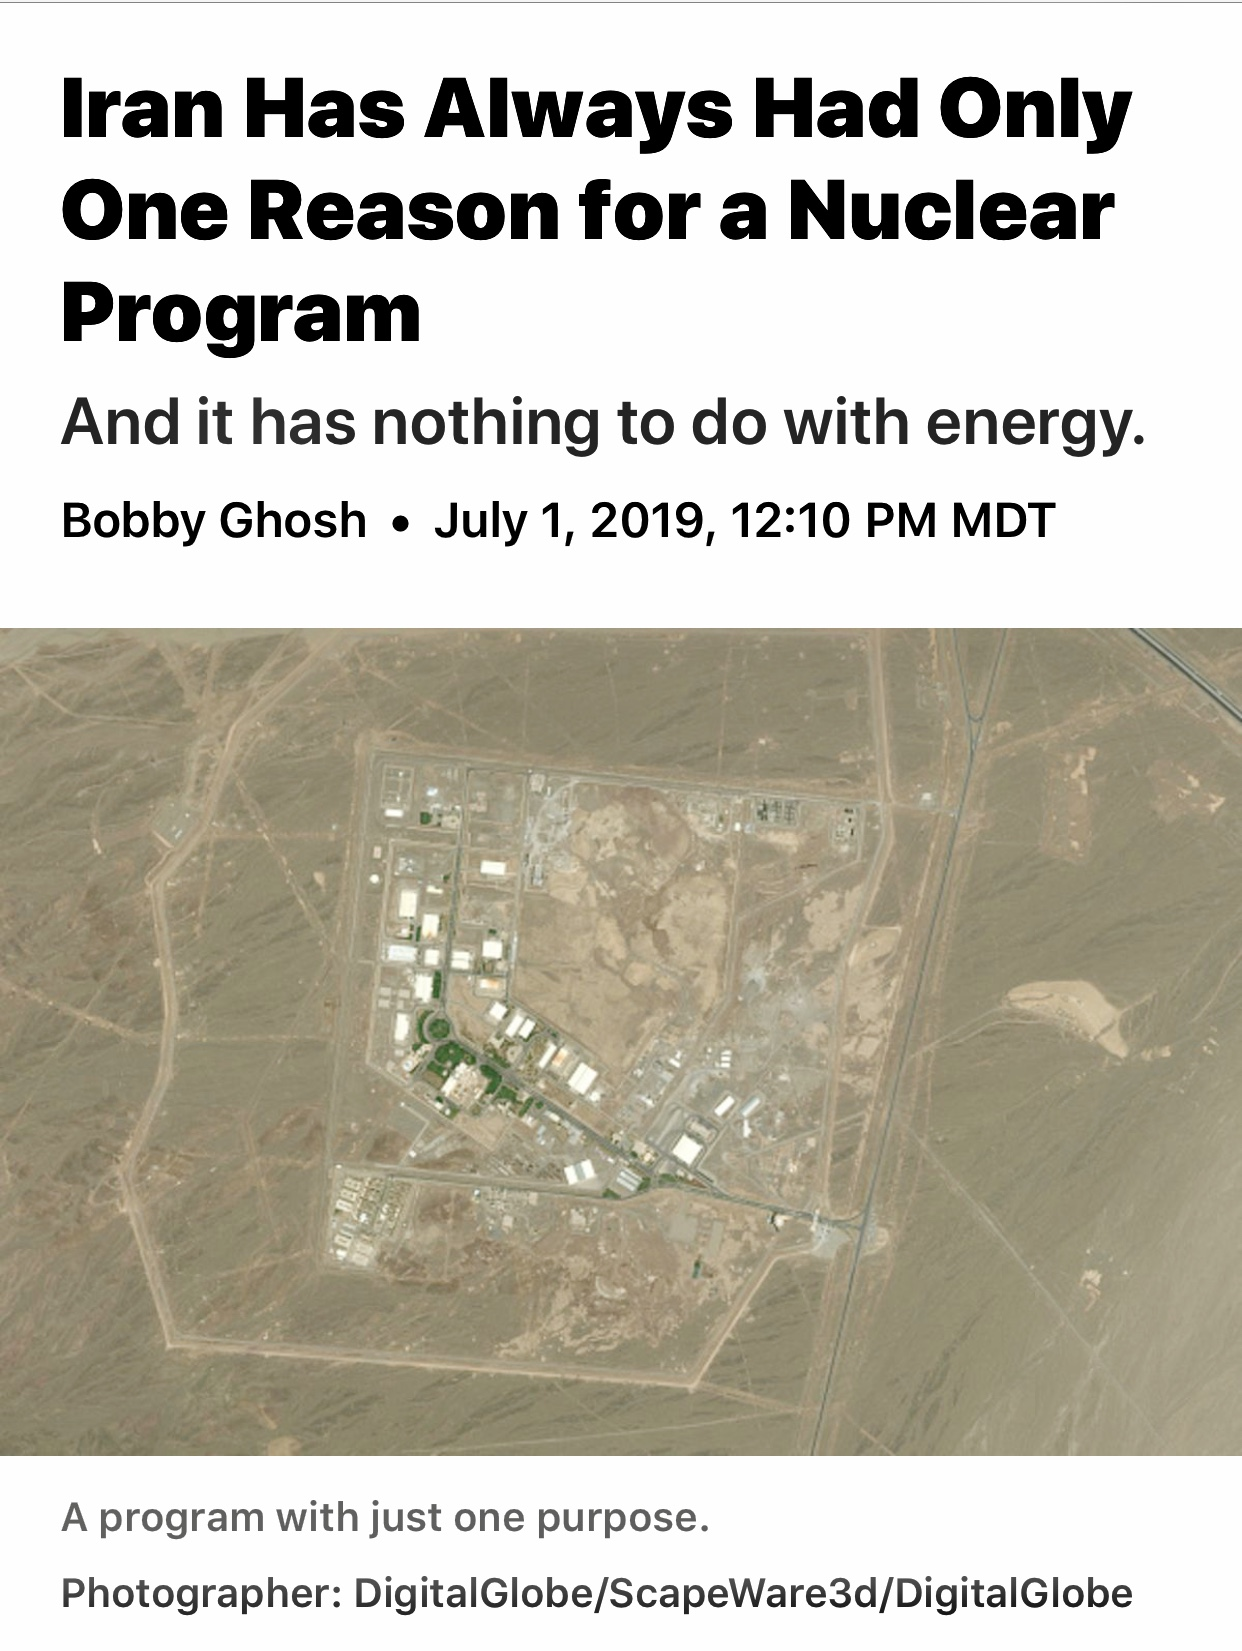 Iran's Uranium Limit Breach Is Reminder of Its Nuclear Bomb Goals – Bloomberg